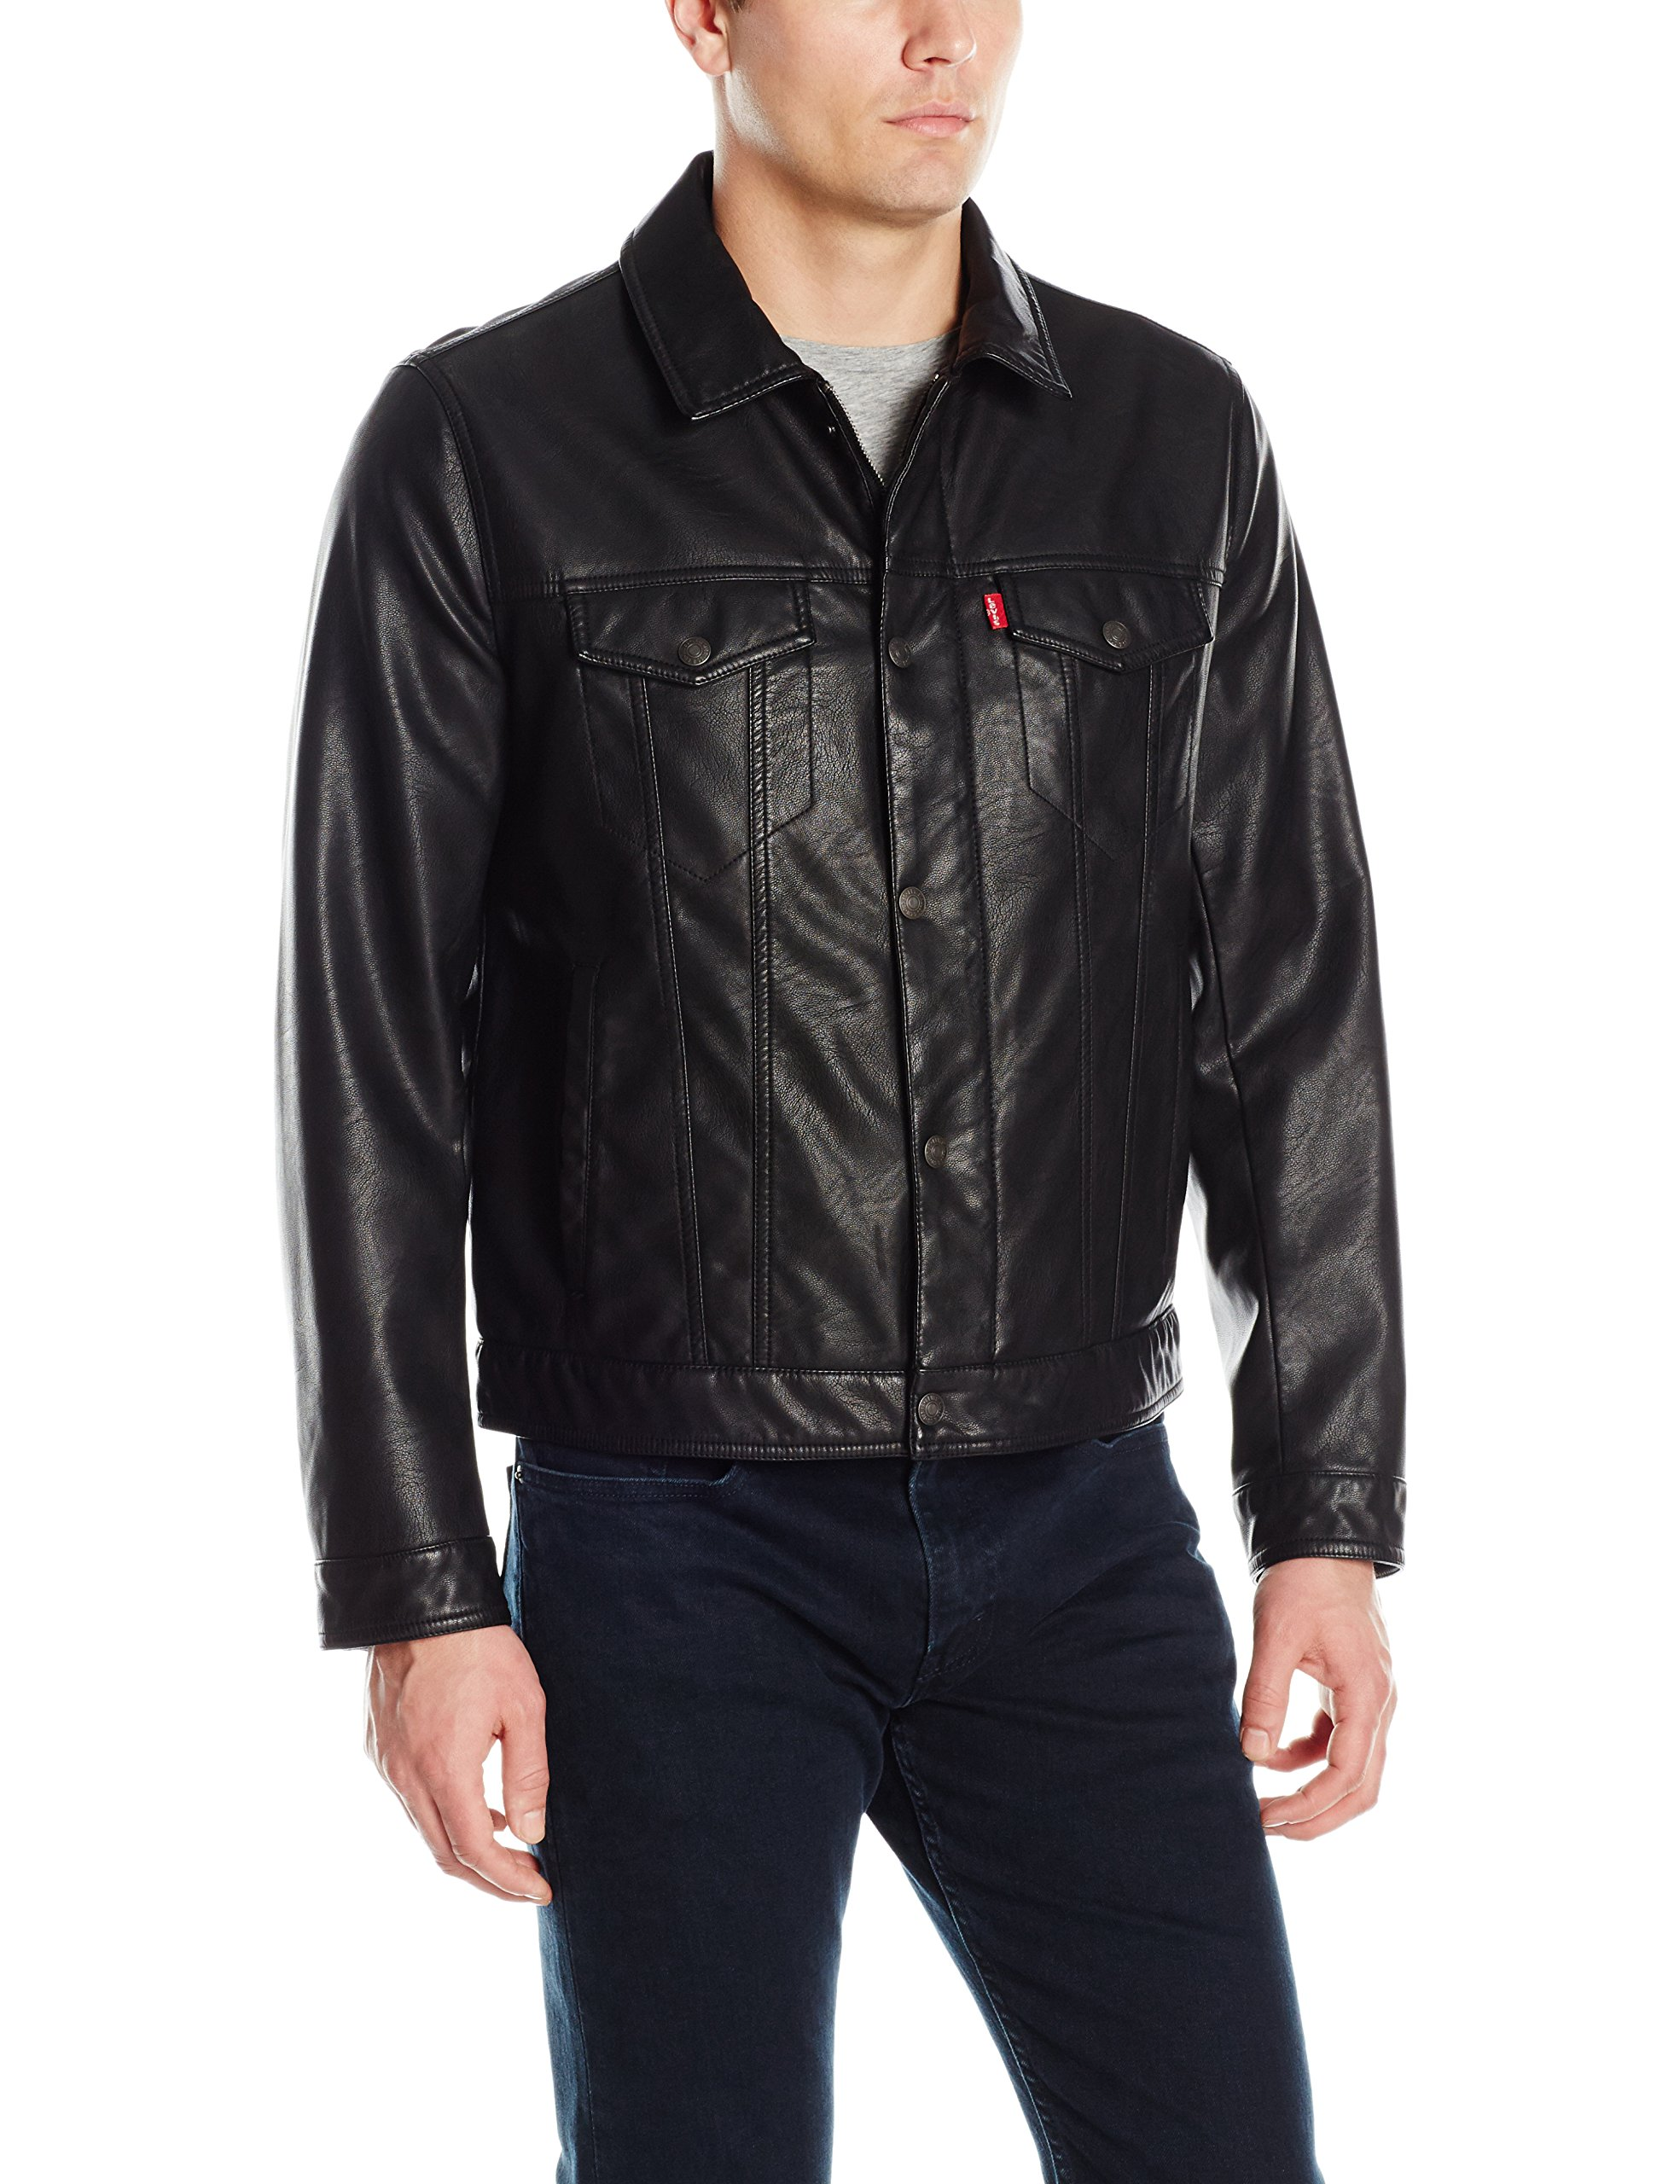 Levi's Men's Smooth Lamb Touch Faux Leather Classic Trucker Jacket, Black, Medium by Levi's